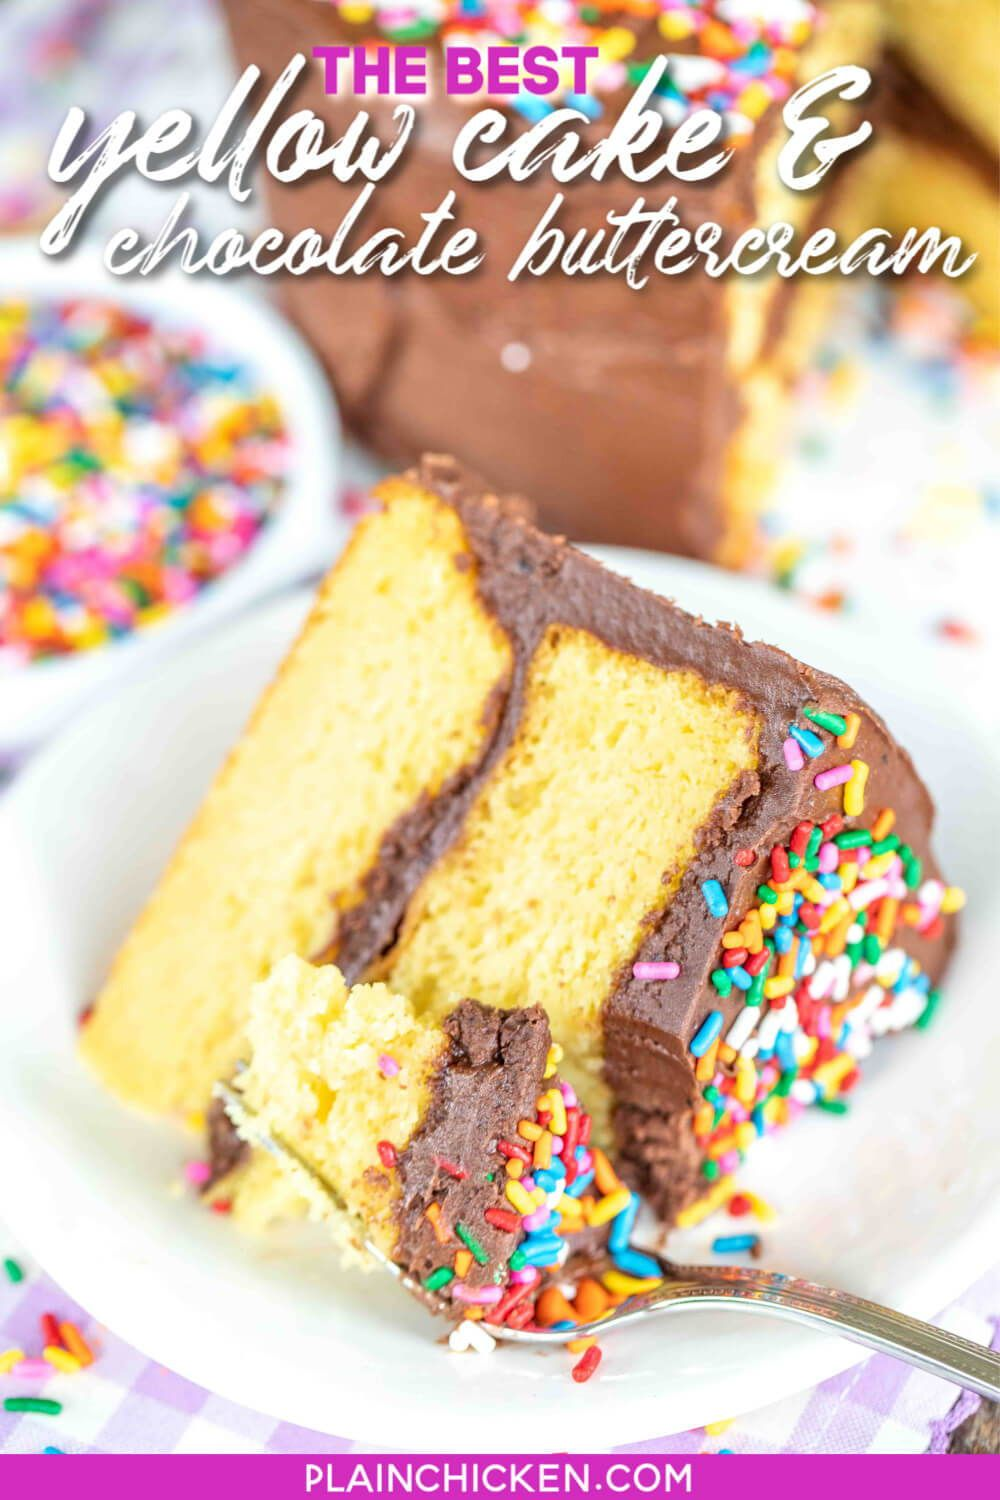 The Best Yellow Cake Chocolate Buttercream Frosting In 2020 Boxed Cake Mixes Recipes Cake Ingredients Eat Dessert